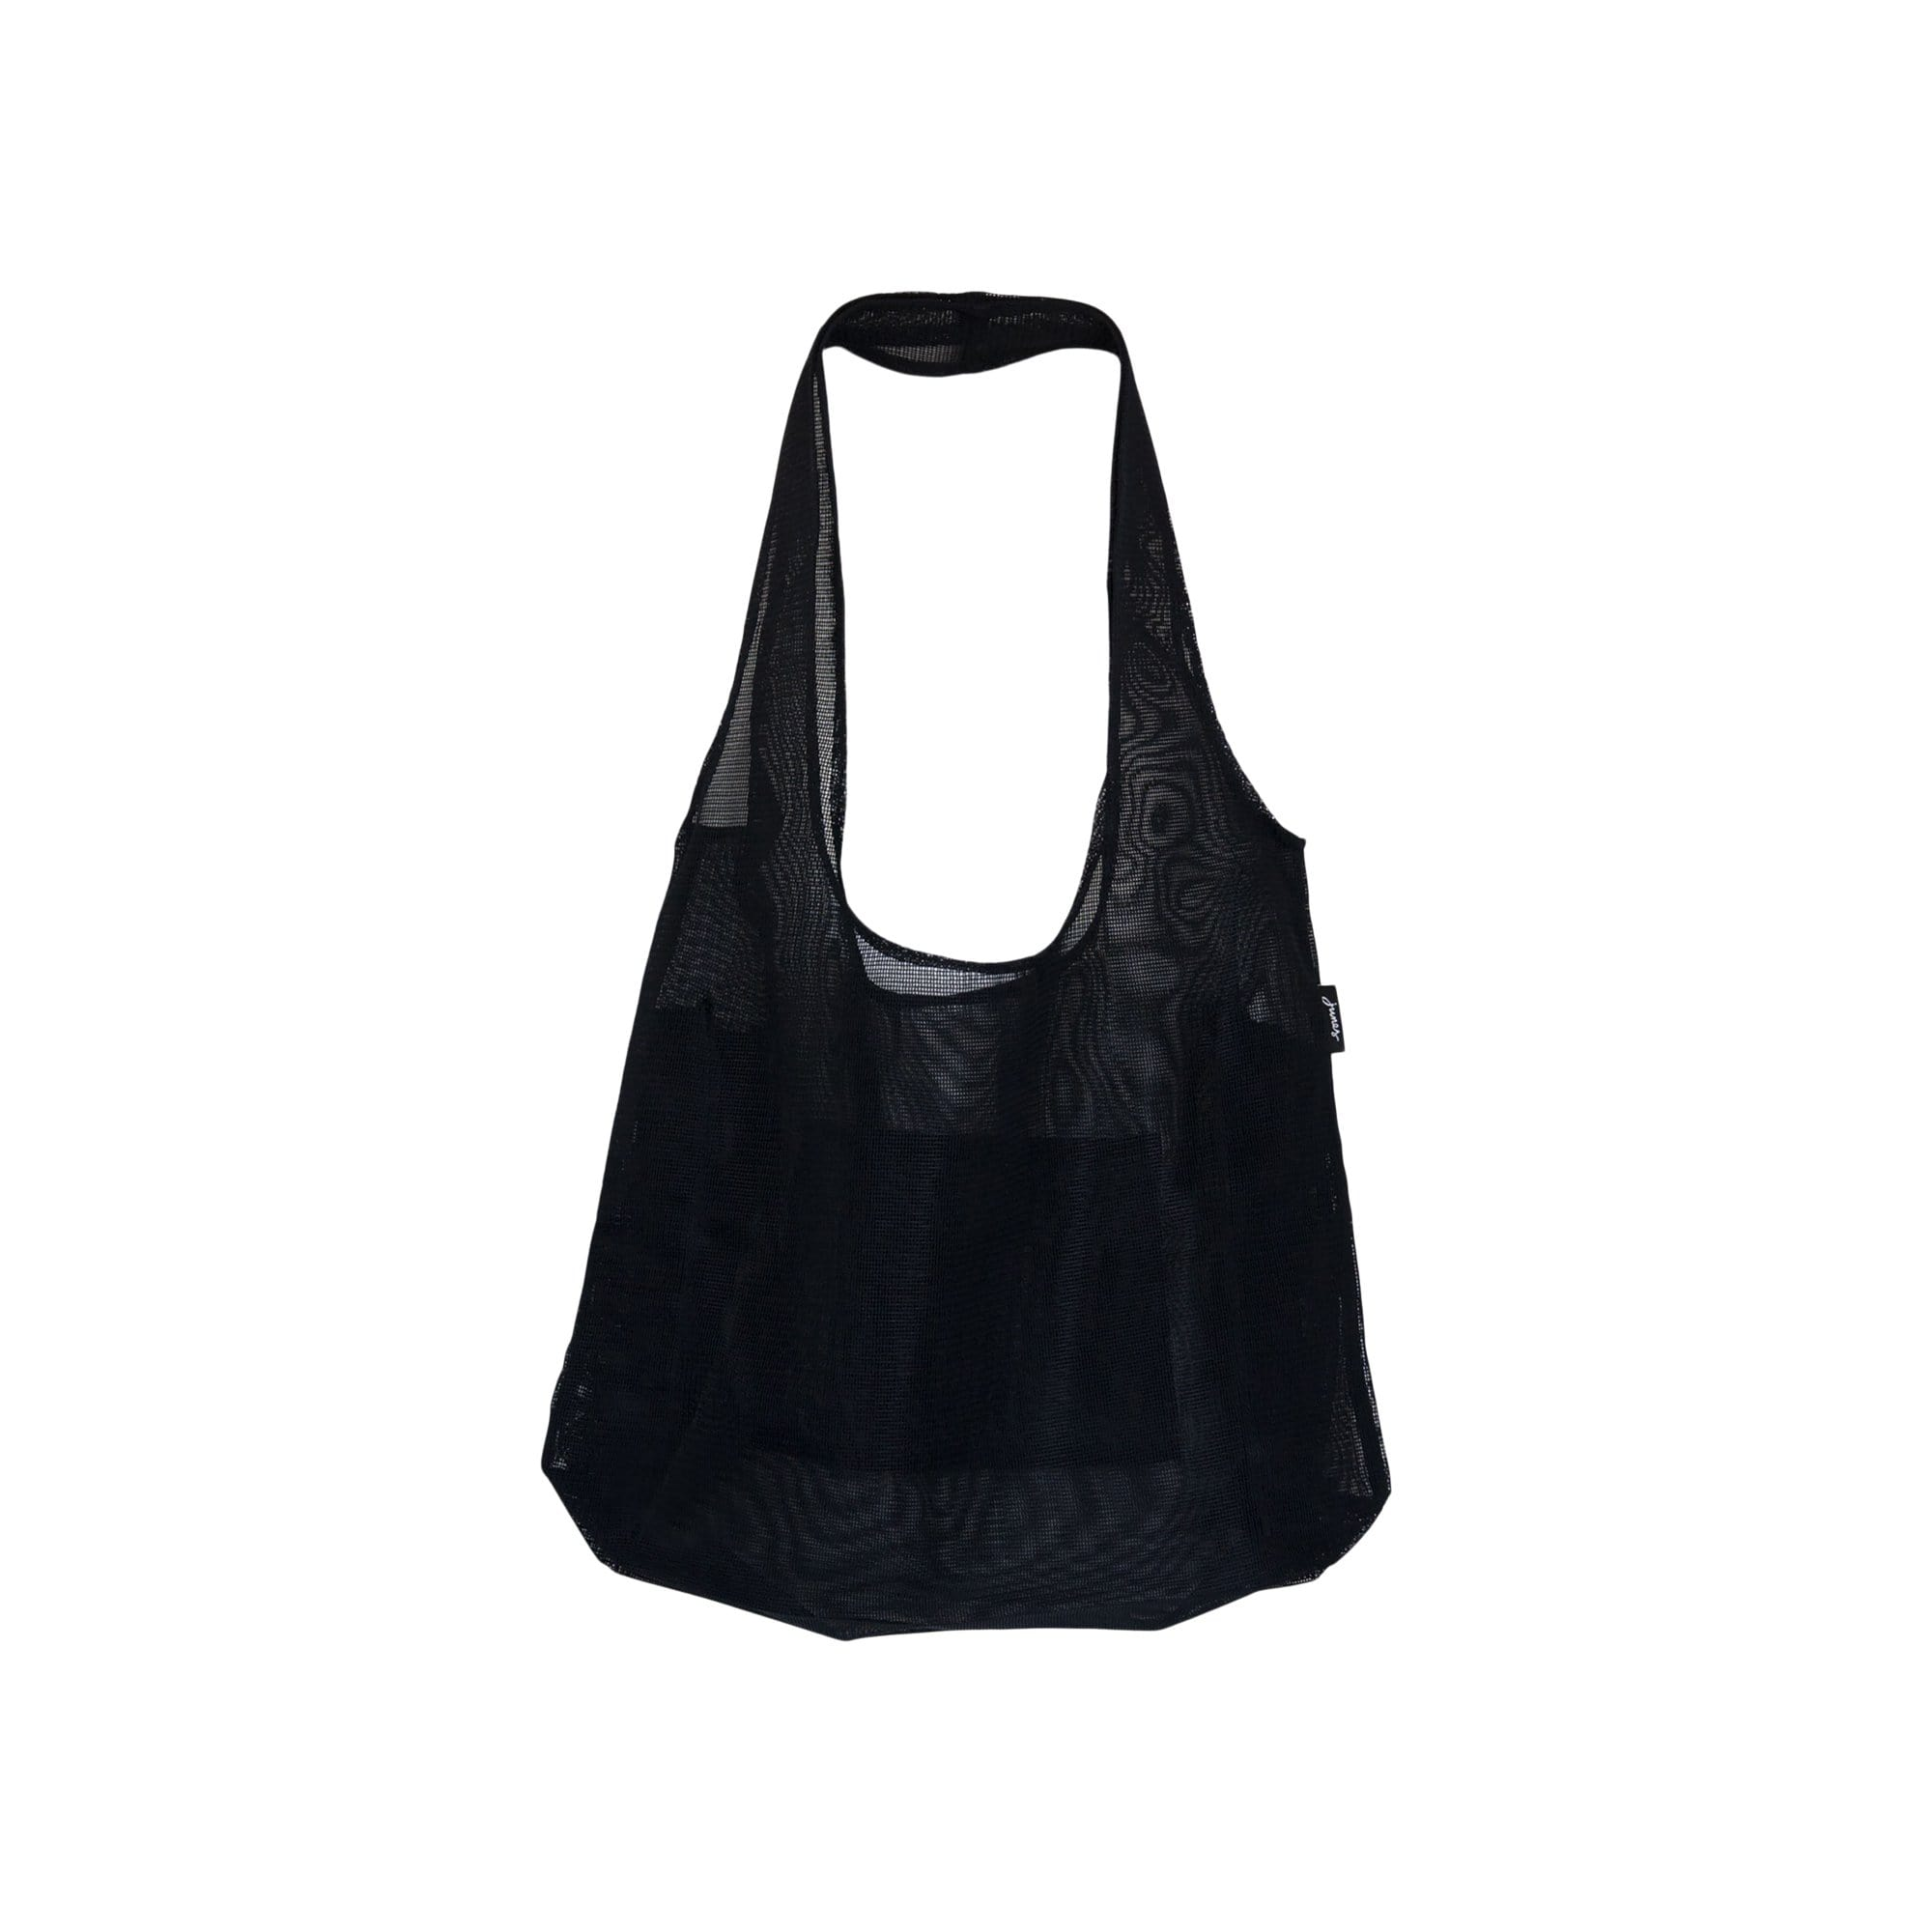 The Everyday Tote in Bio-Knit